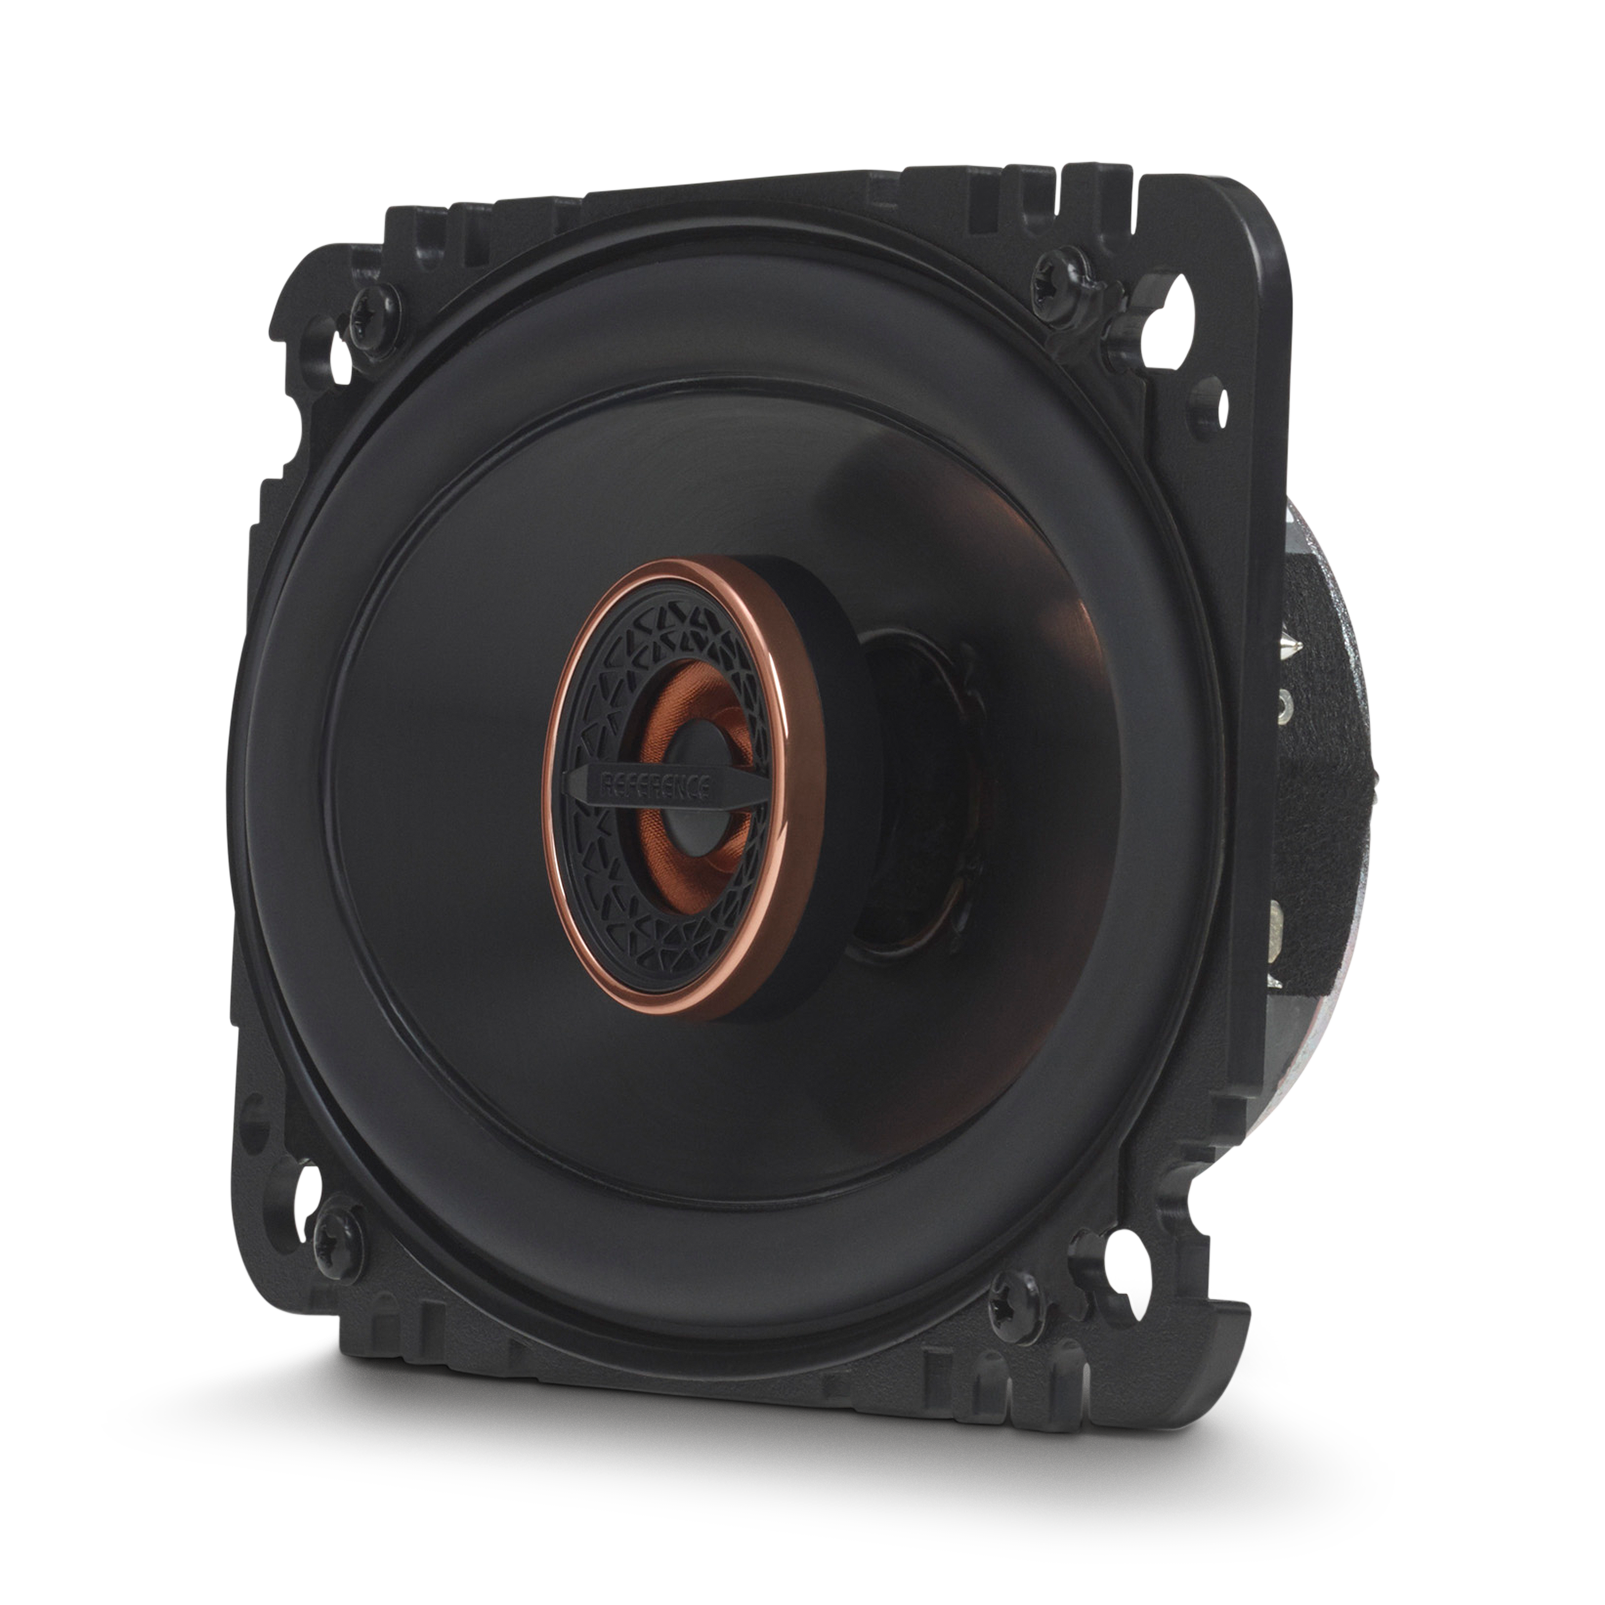 "Reference 6432cfx - Black - 4"" x 6"" (100mm x 152mm) coaxial car speaker, 135W - Detailshot 1"